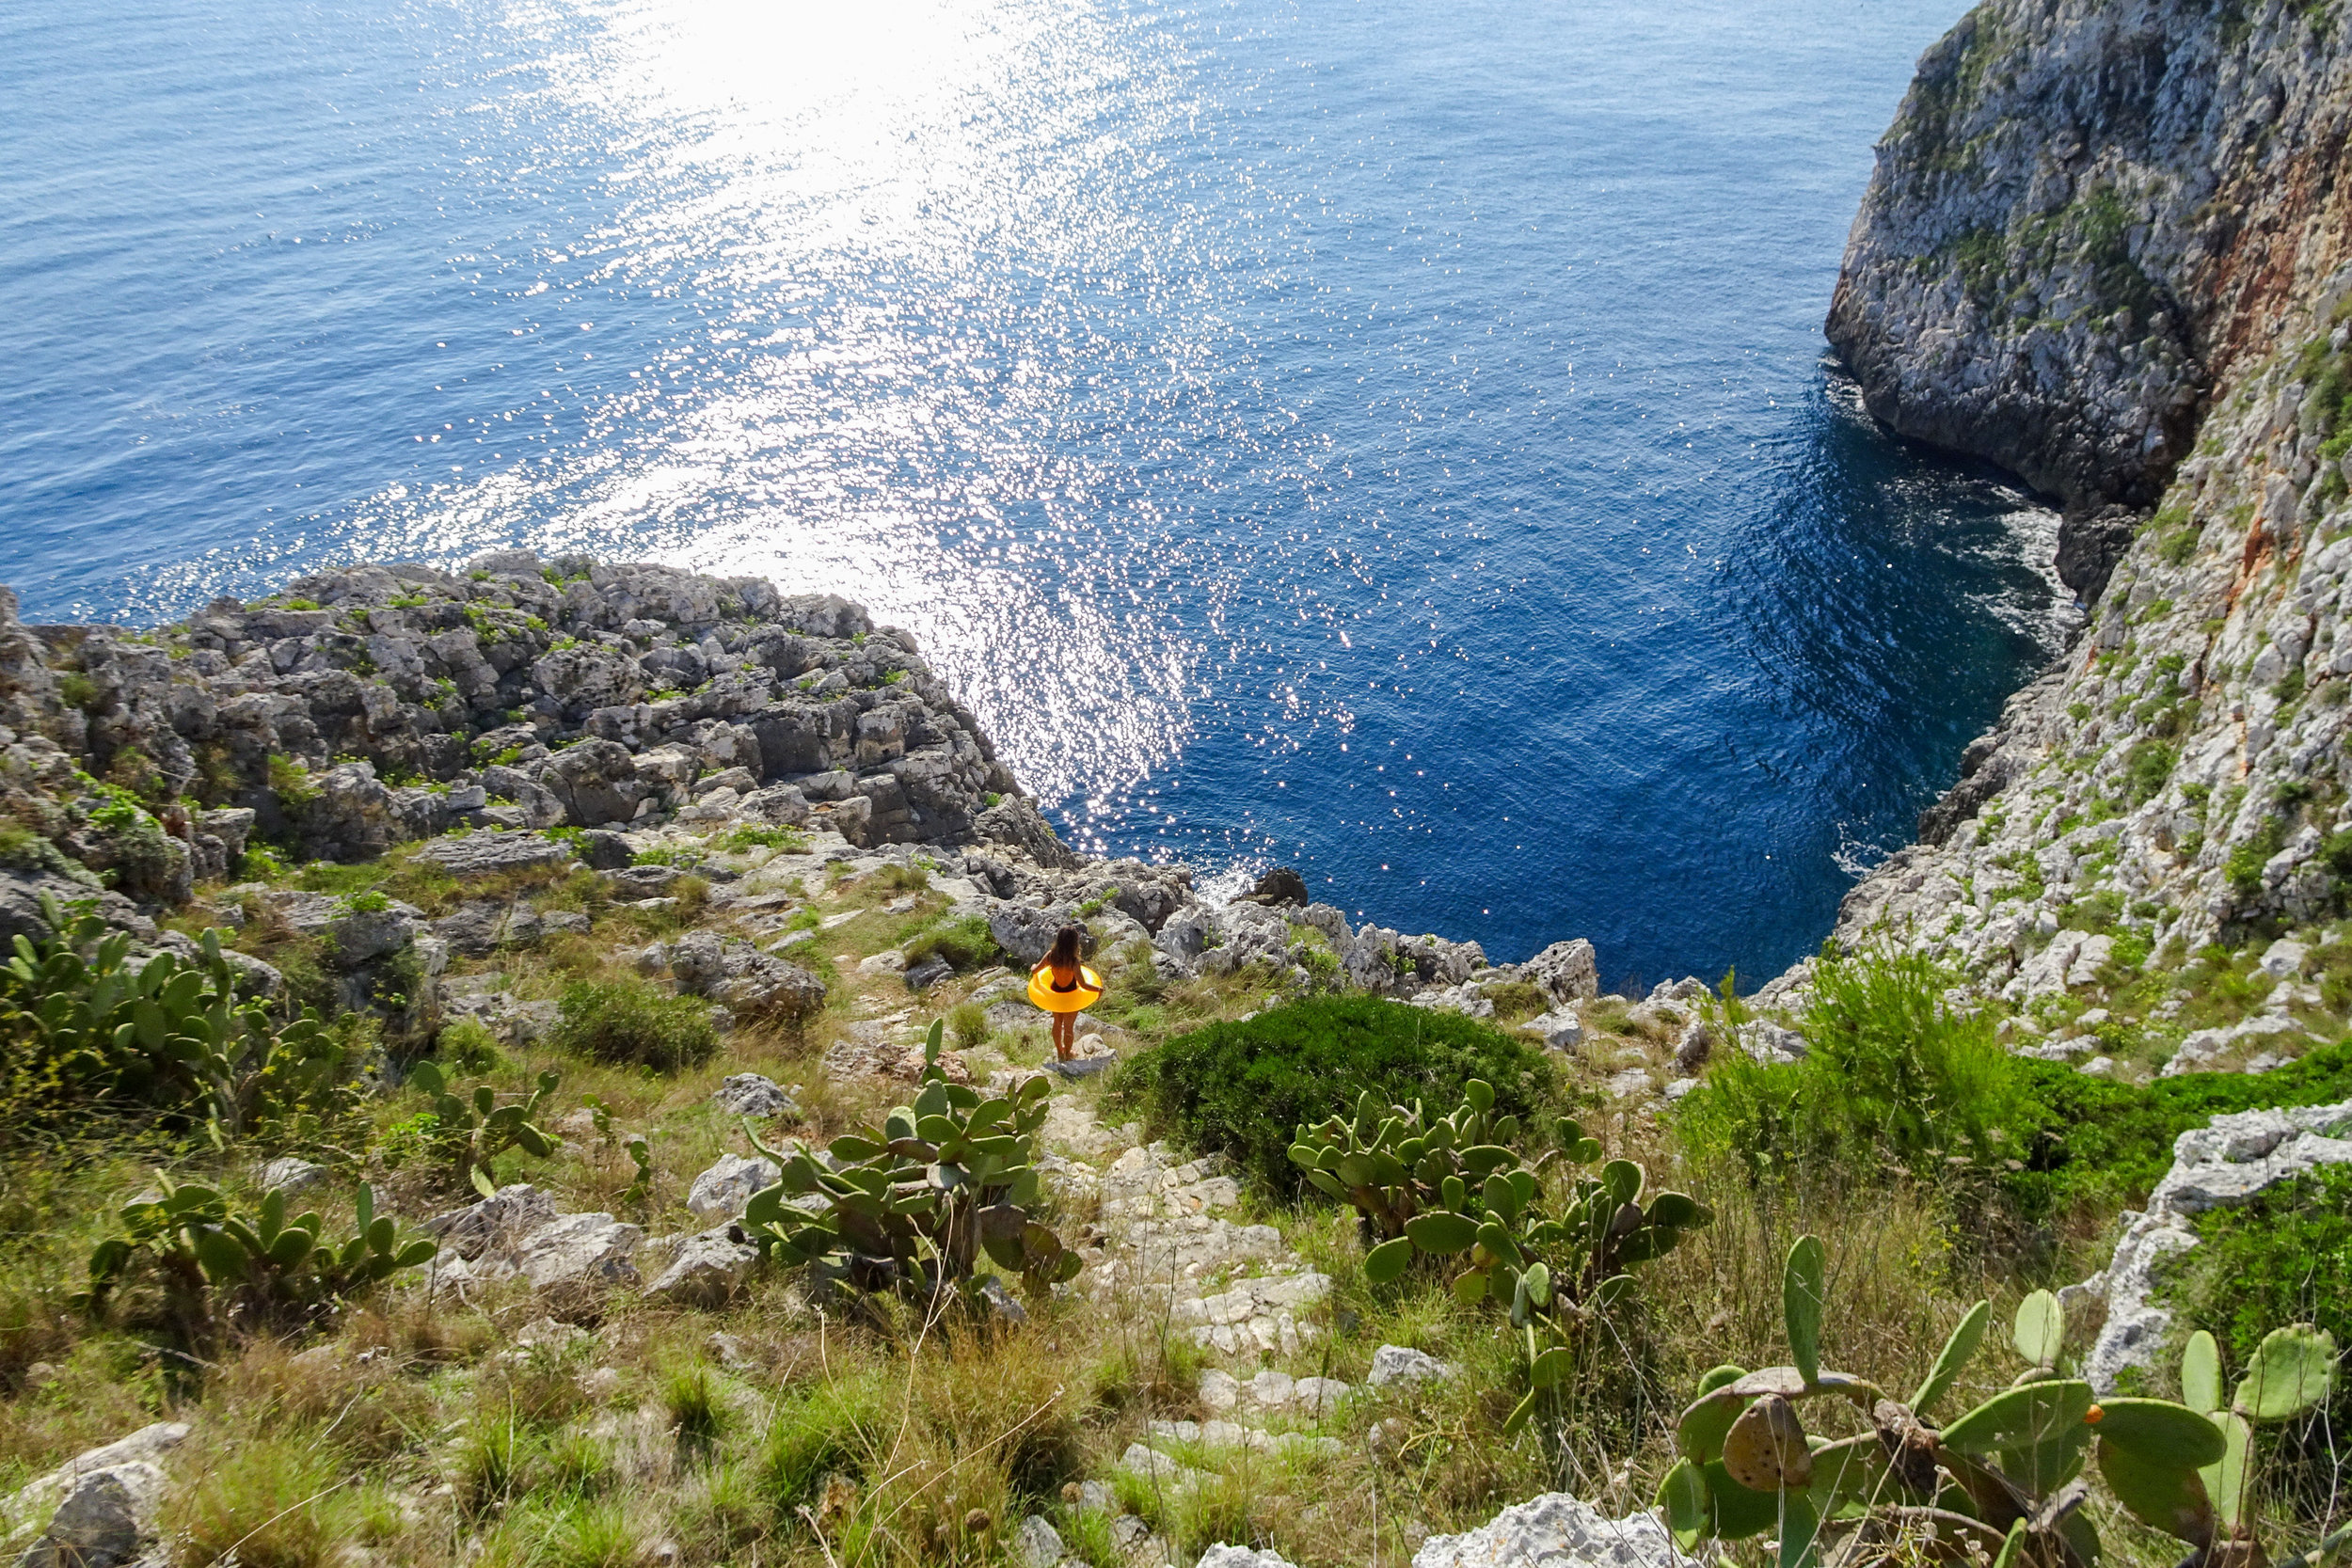 2.) Castro - We spent a few epic days relaxing in the Puglia region with friends. We stayed in the town of Castro and I highly recommend a visit if you are looking for a more authentic Italian experience. Prepare to be blown away by the lovely beaches and amazing food.